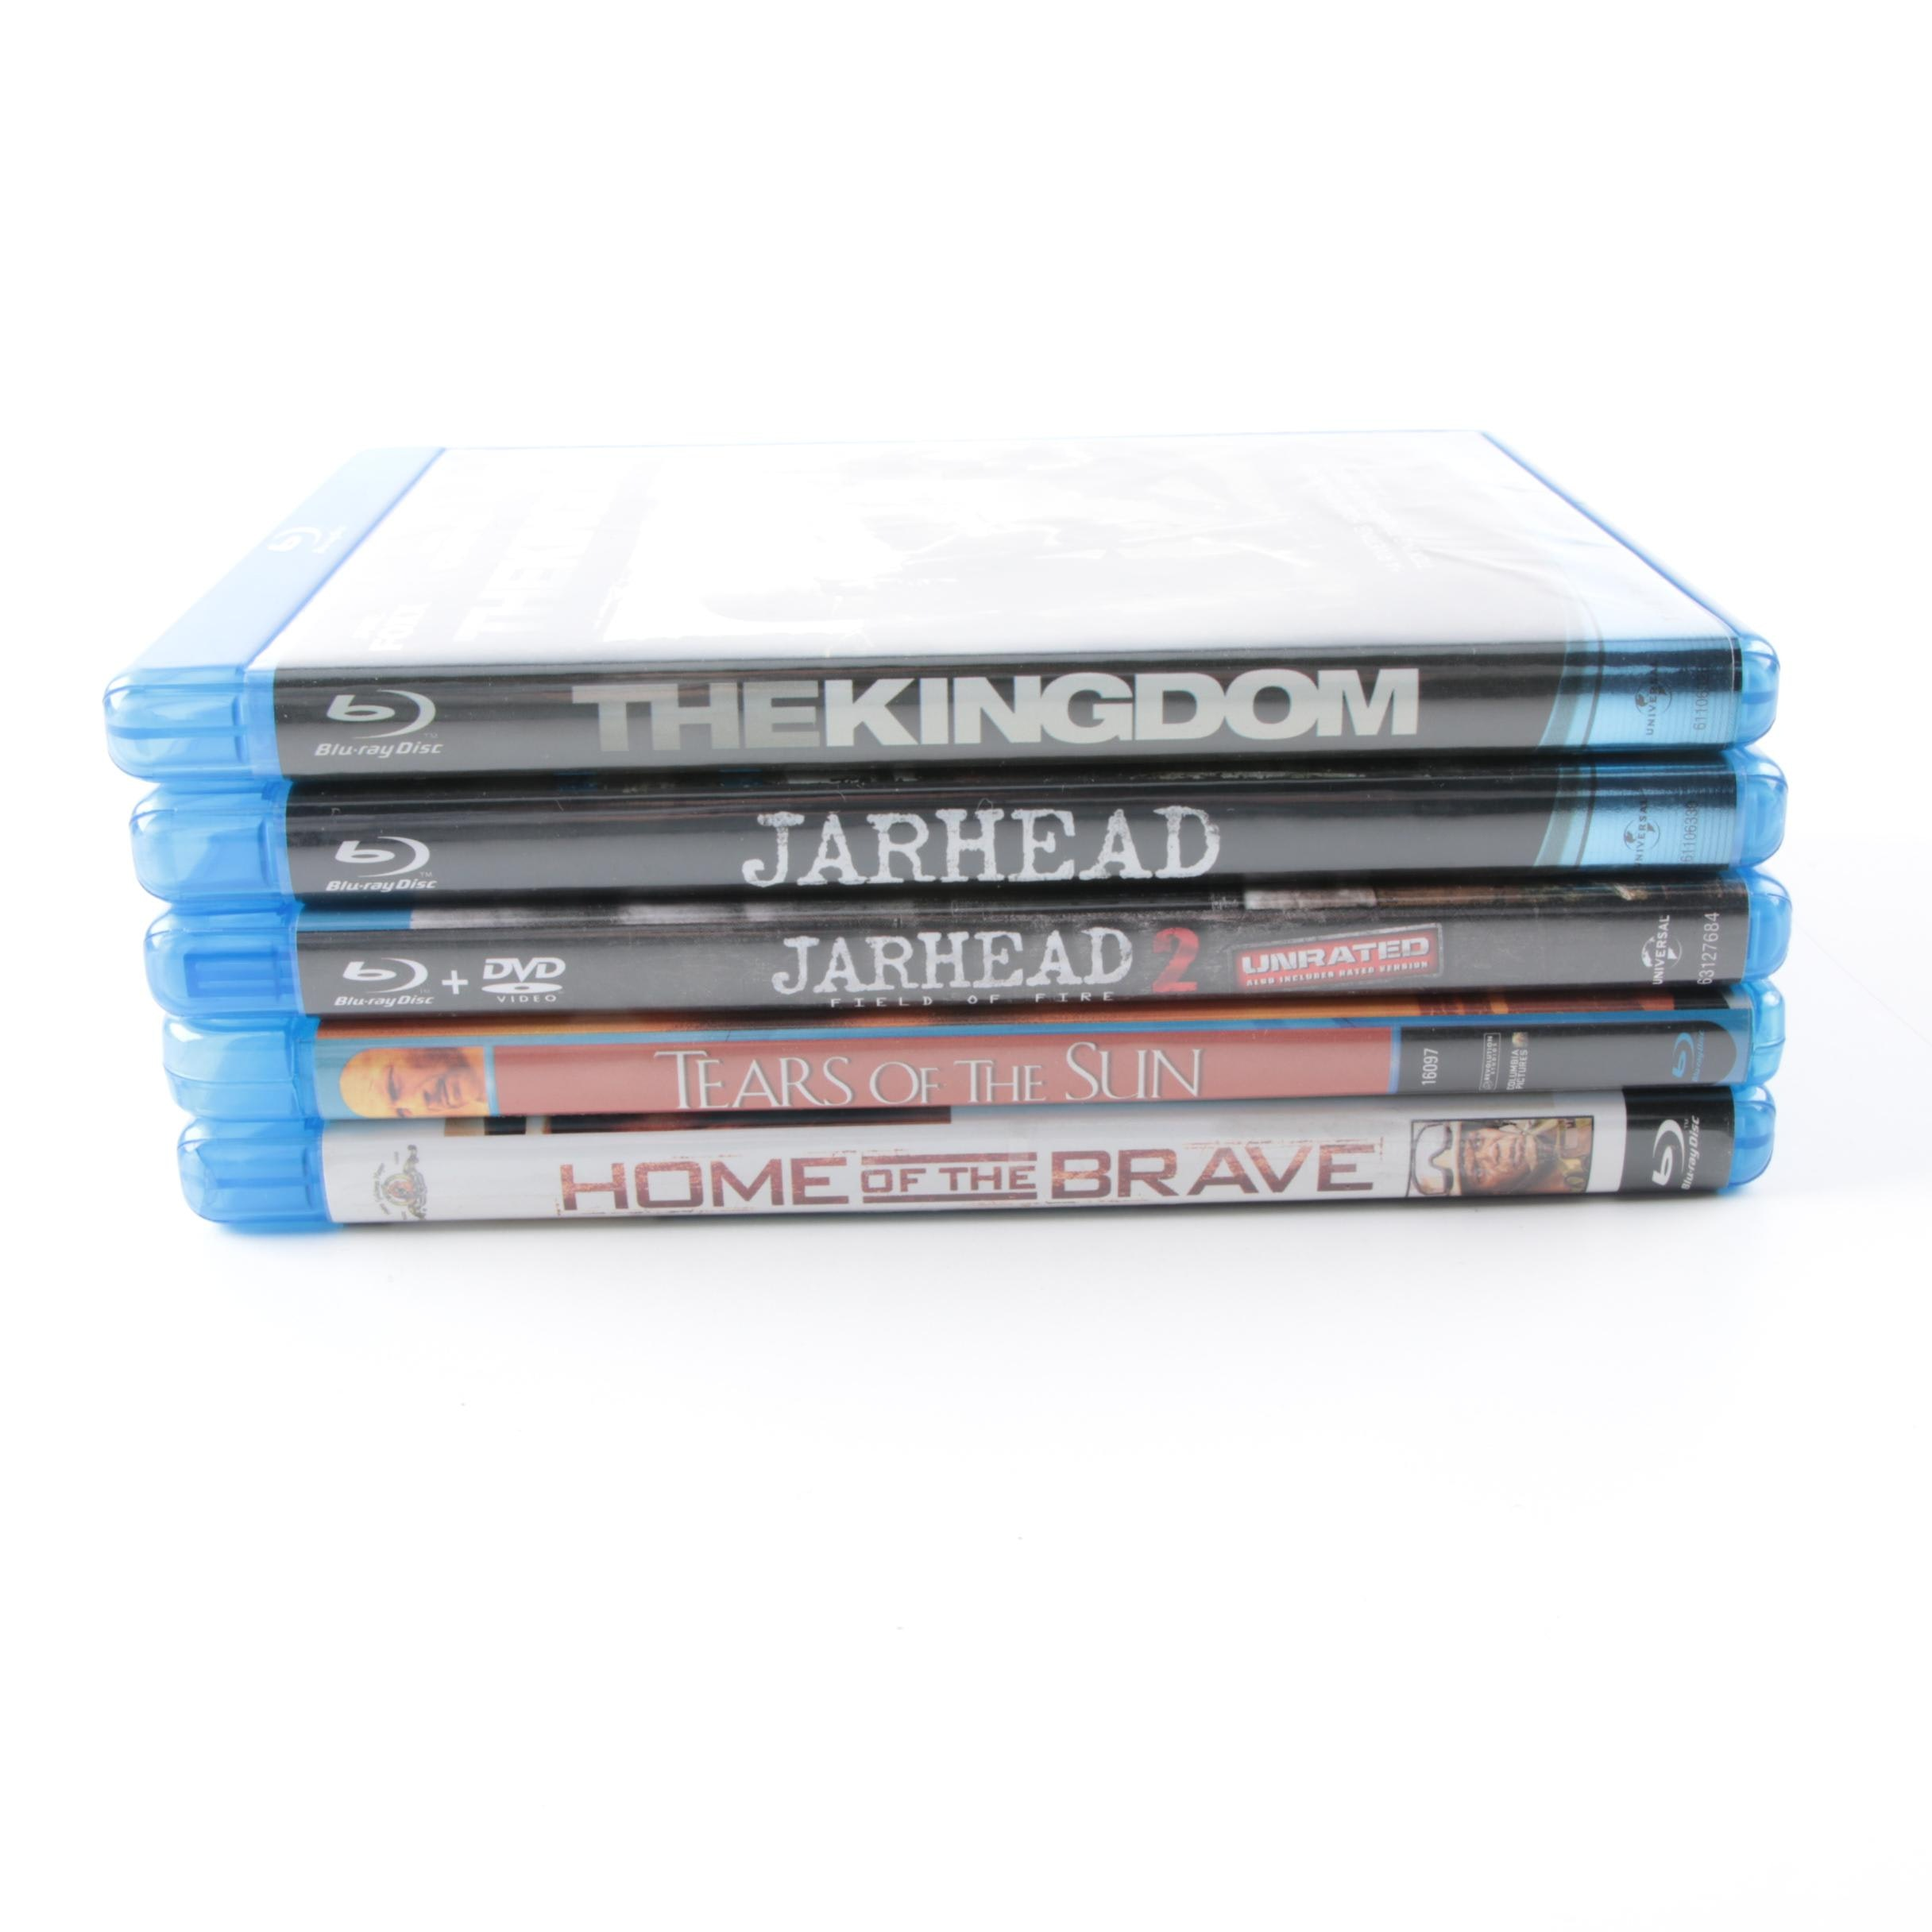 """Modern War Films Blu-Ray Collection Including """"The Kingdom"""" and """"Jarhead"""""""